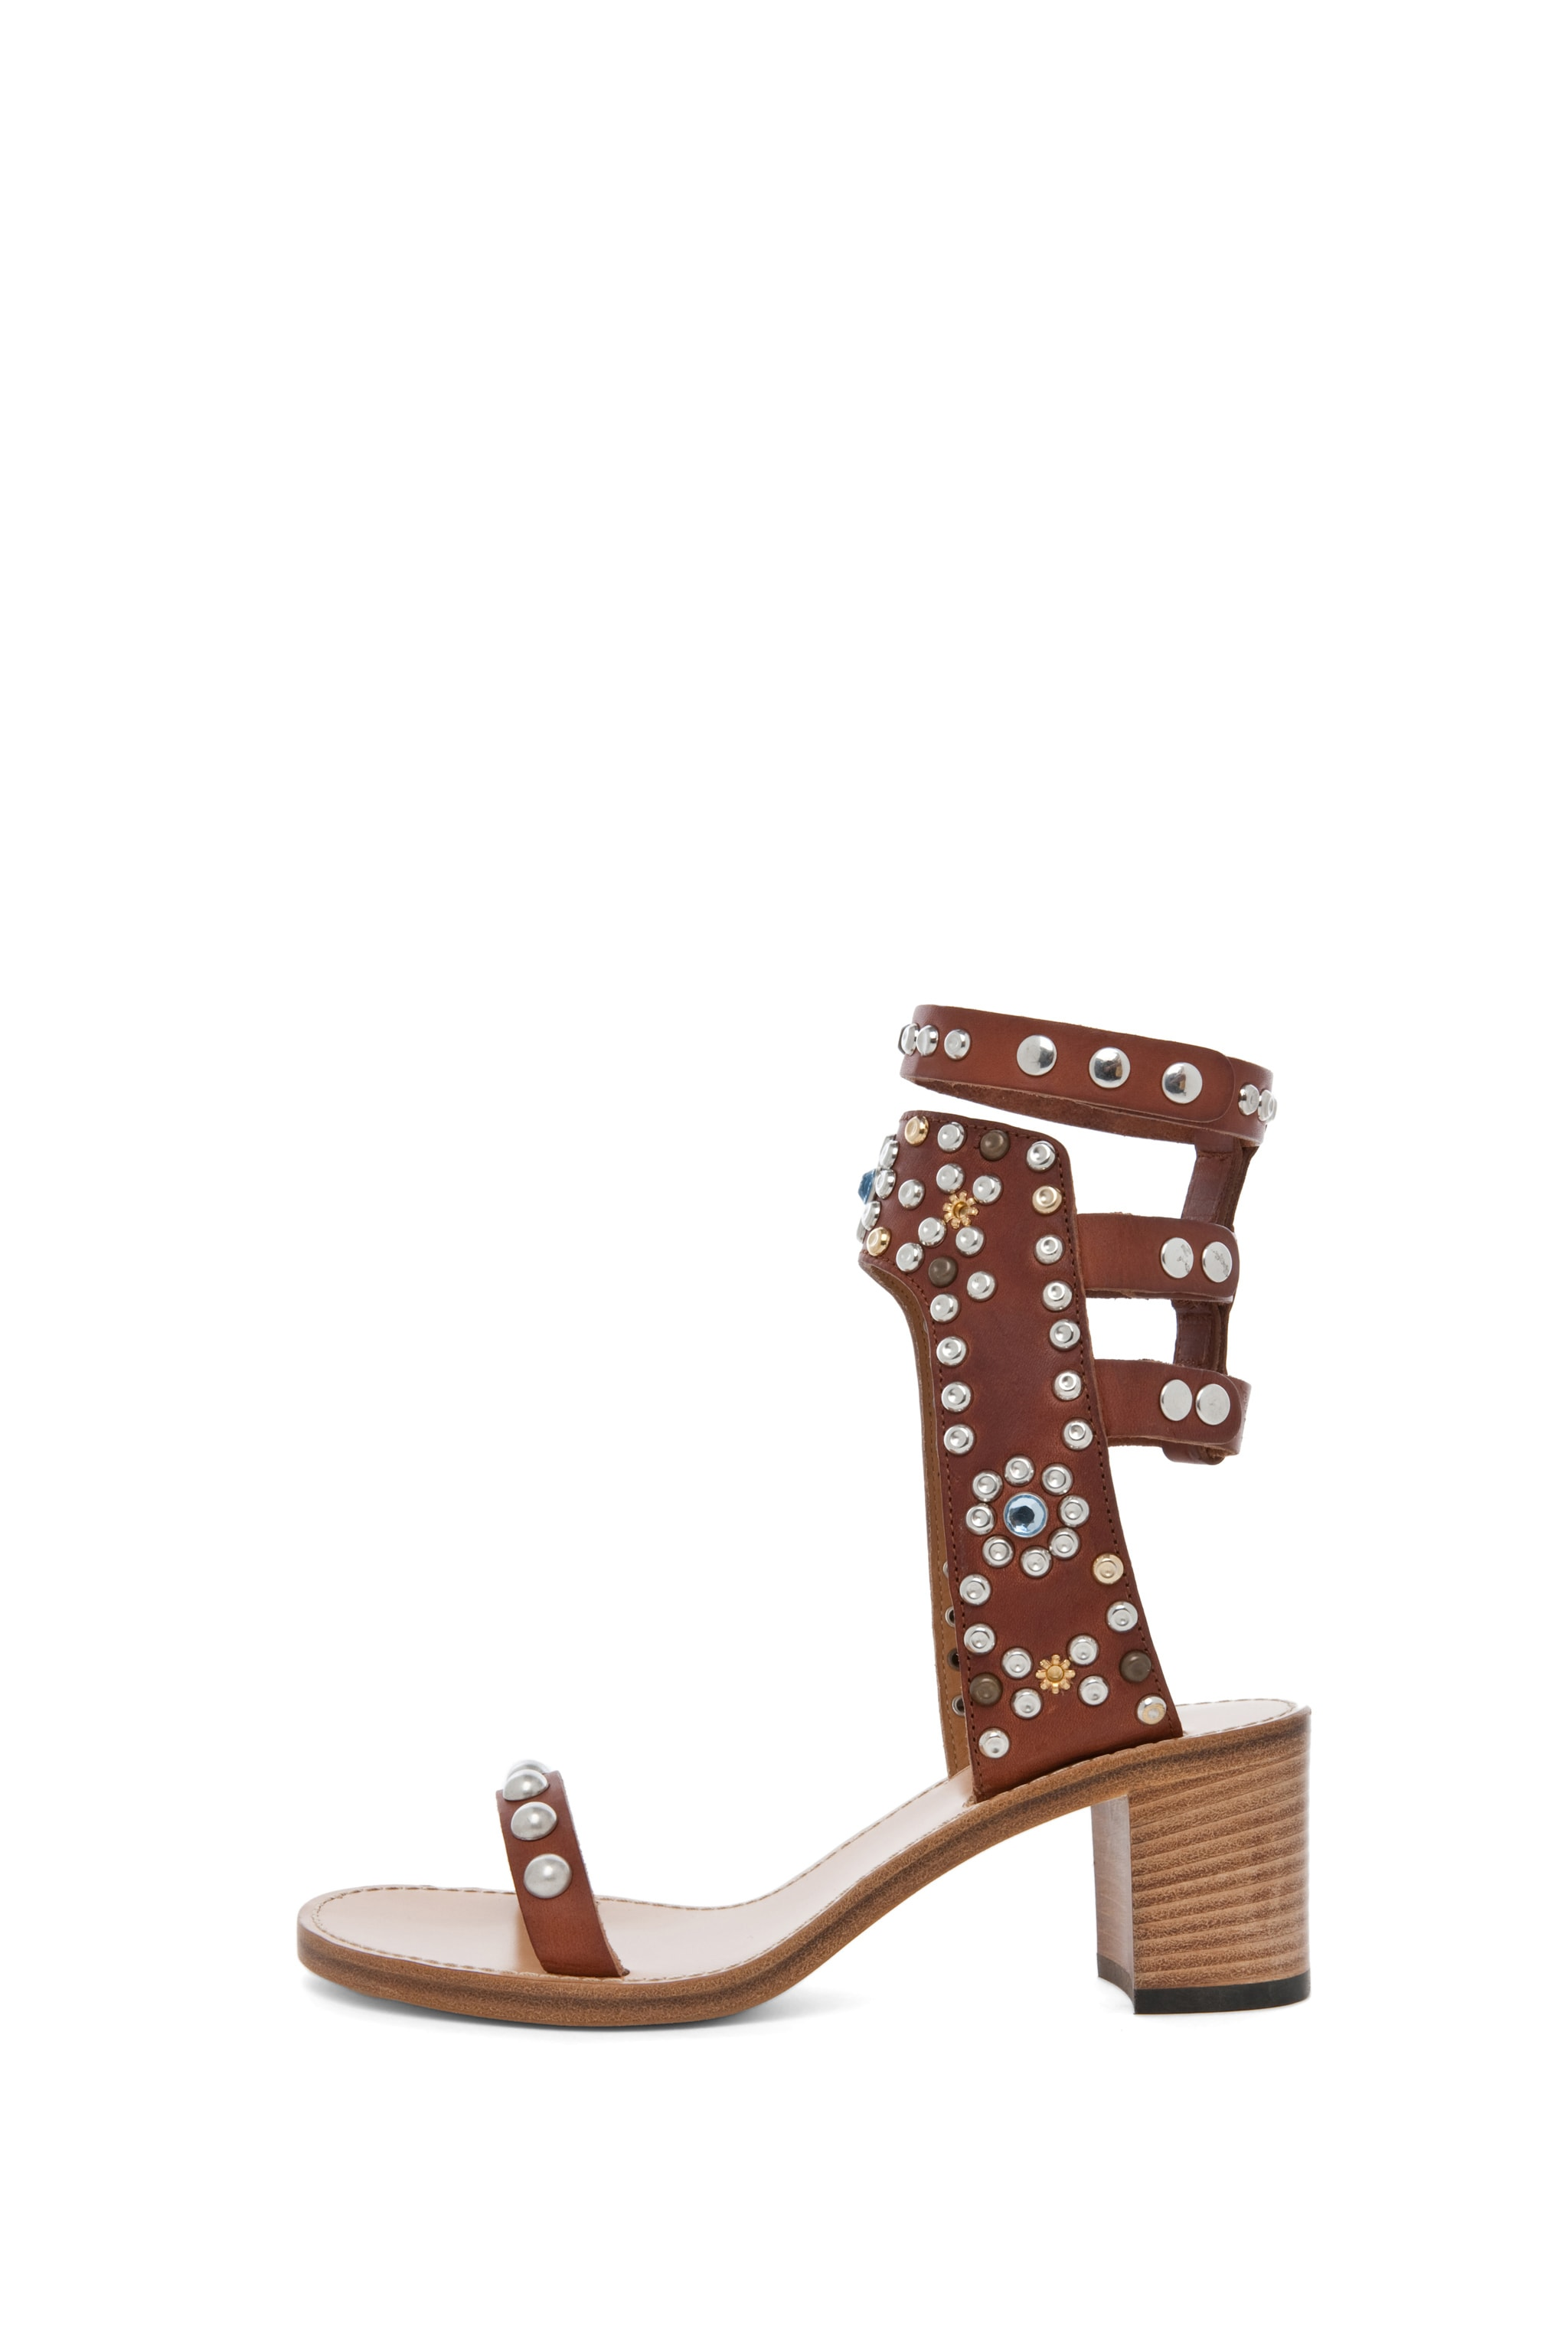 Image 1 of Isabel Marant Caroll Strassed and Studded Sandal in Cognac